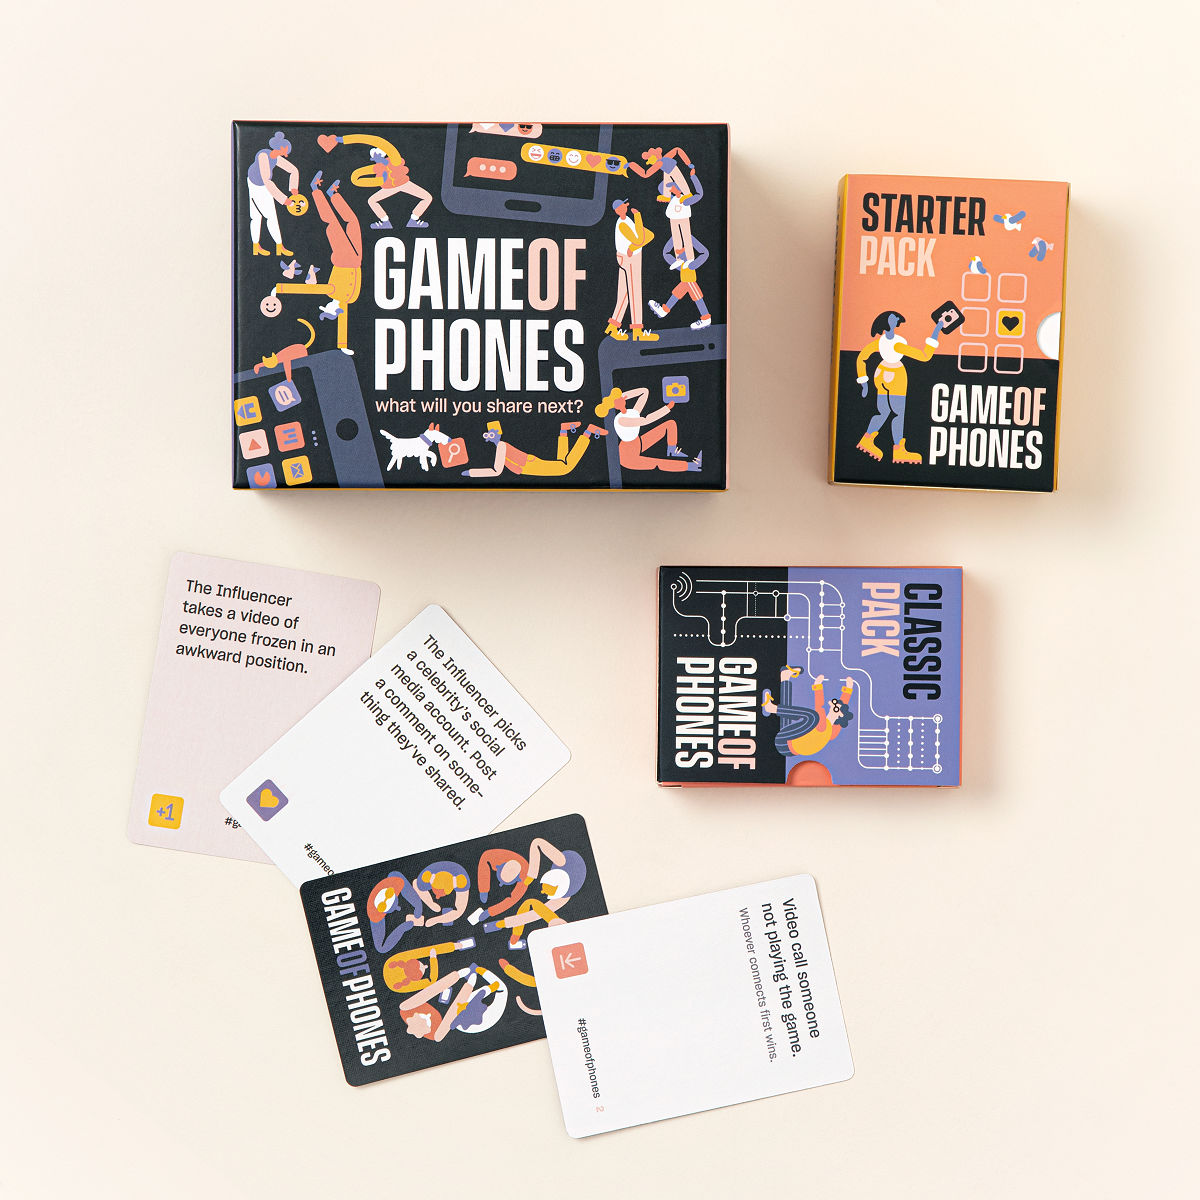 Game of Phones - fun date night games  - 22 thoughtful birthday gifts for husband that has everything - TodayWeDate.com